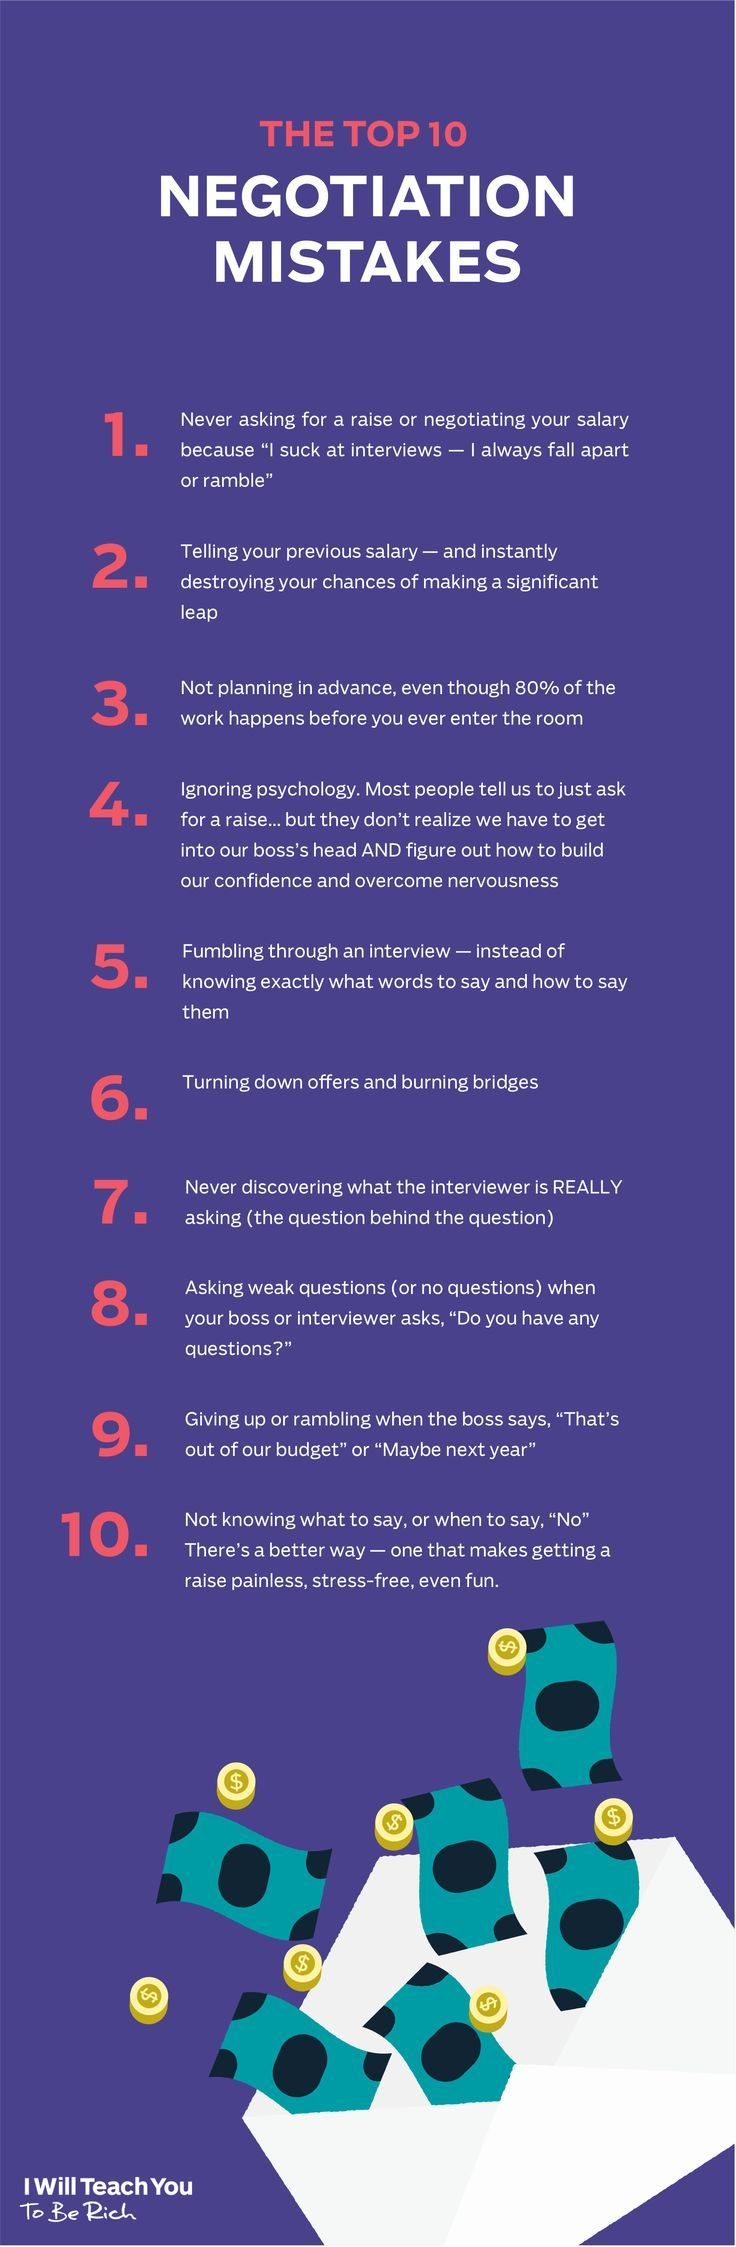 The Top 10 Negotiation Miskates (from The Ultimate Guide To Asking For A  Raise